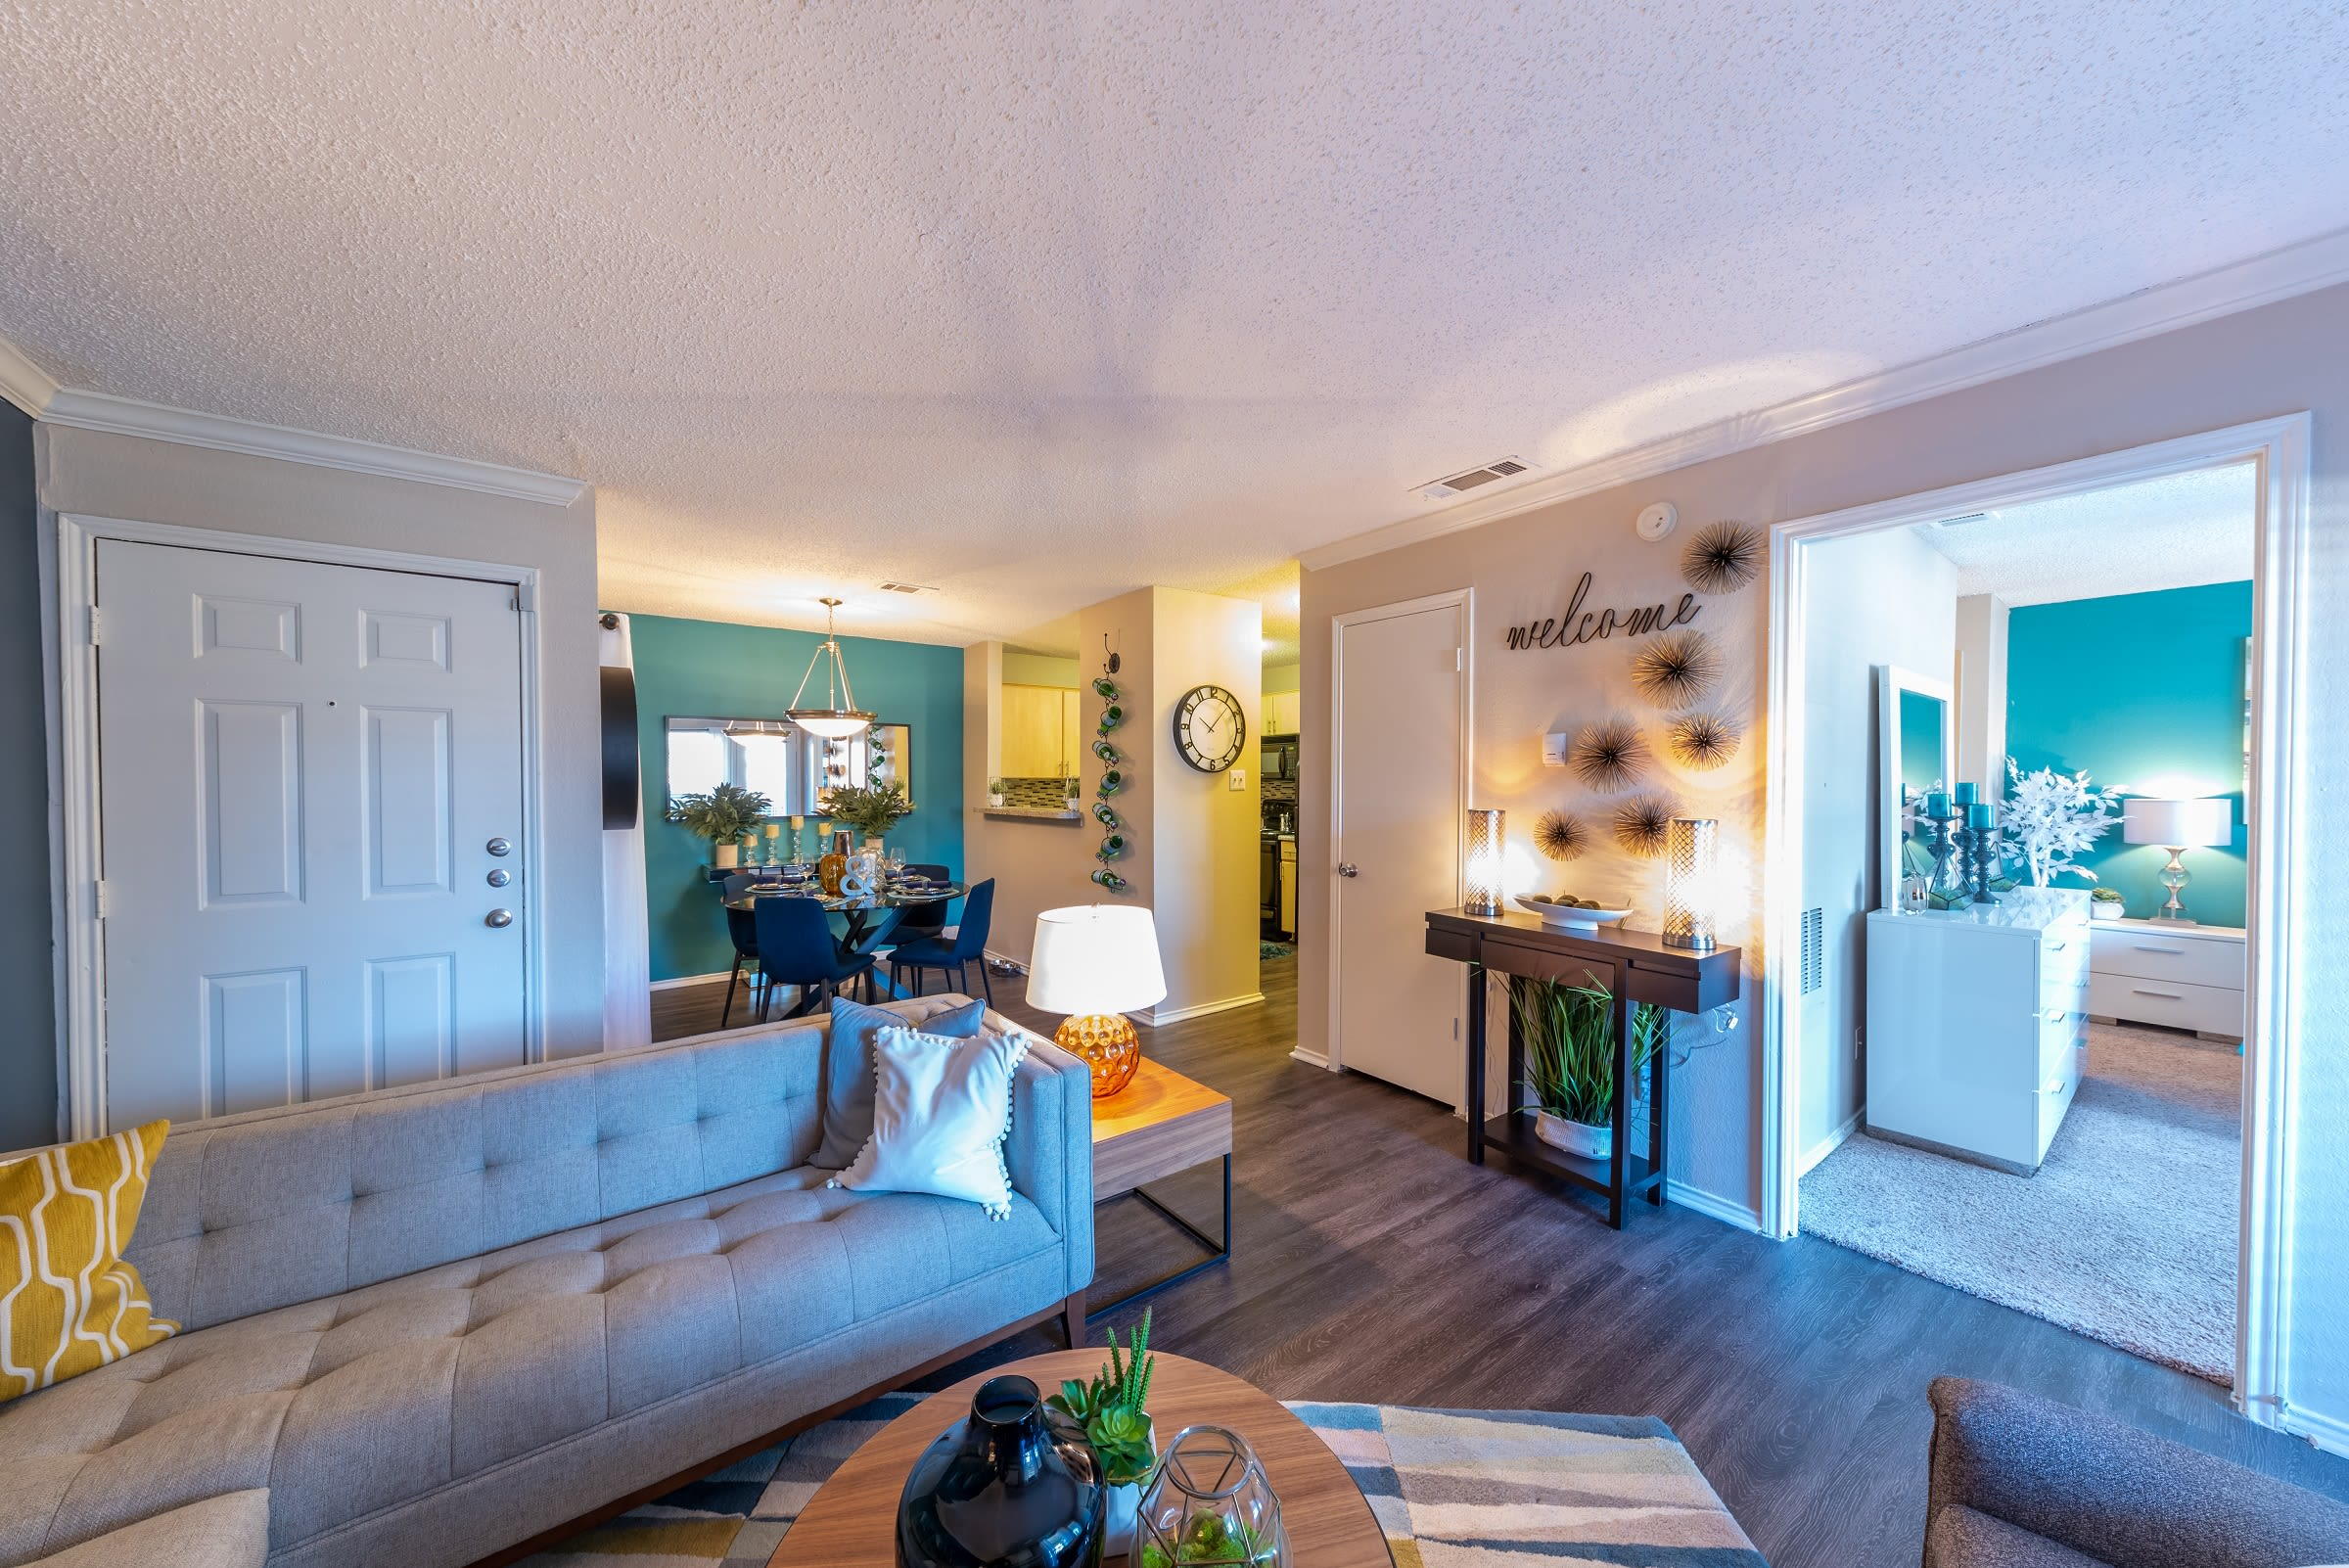 Open concept floor plan with hardwood floors and modern decor at Village Green of Bear Creek in Euless, Texas